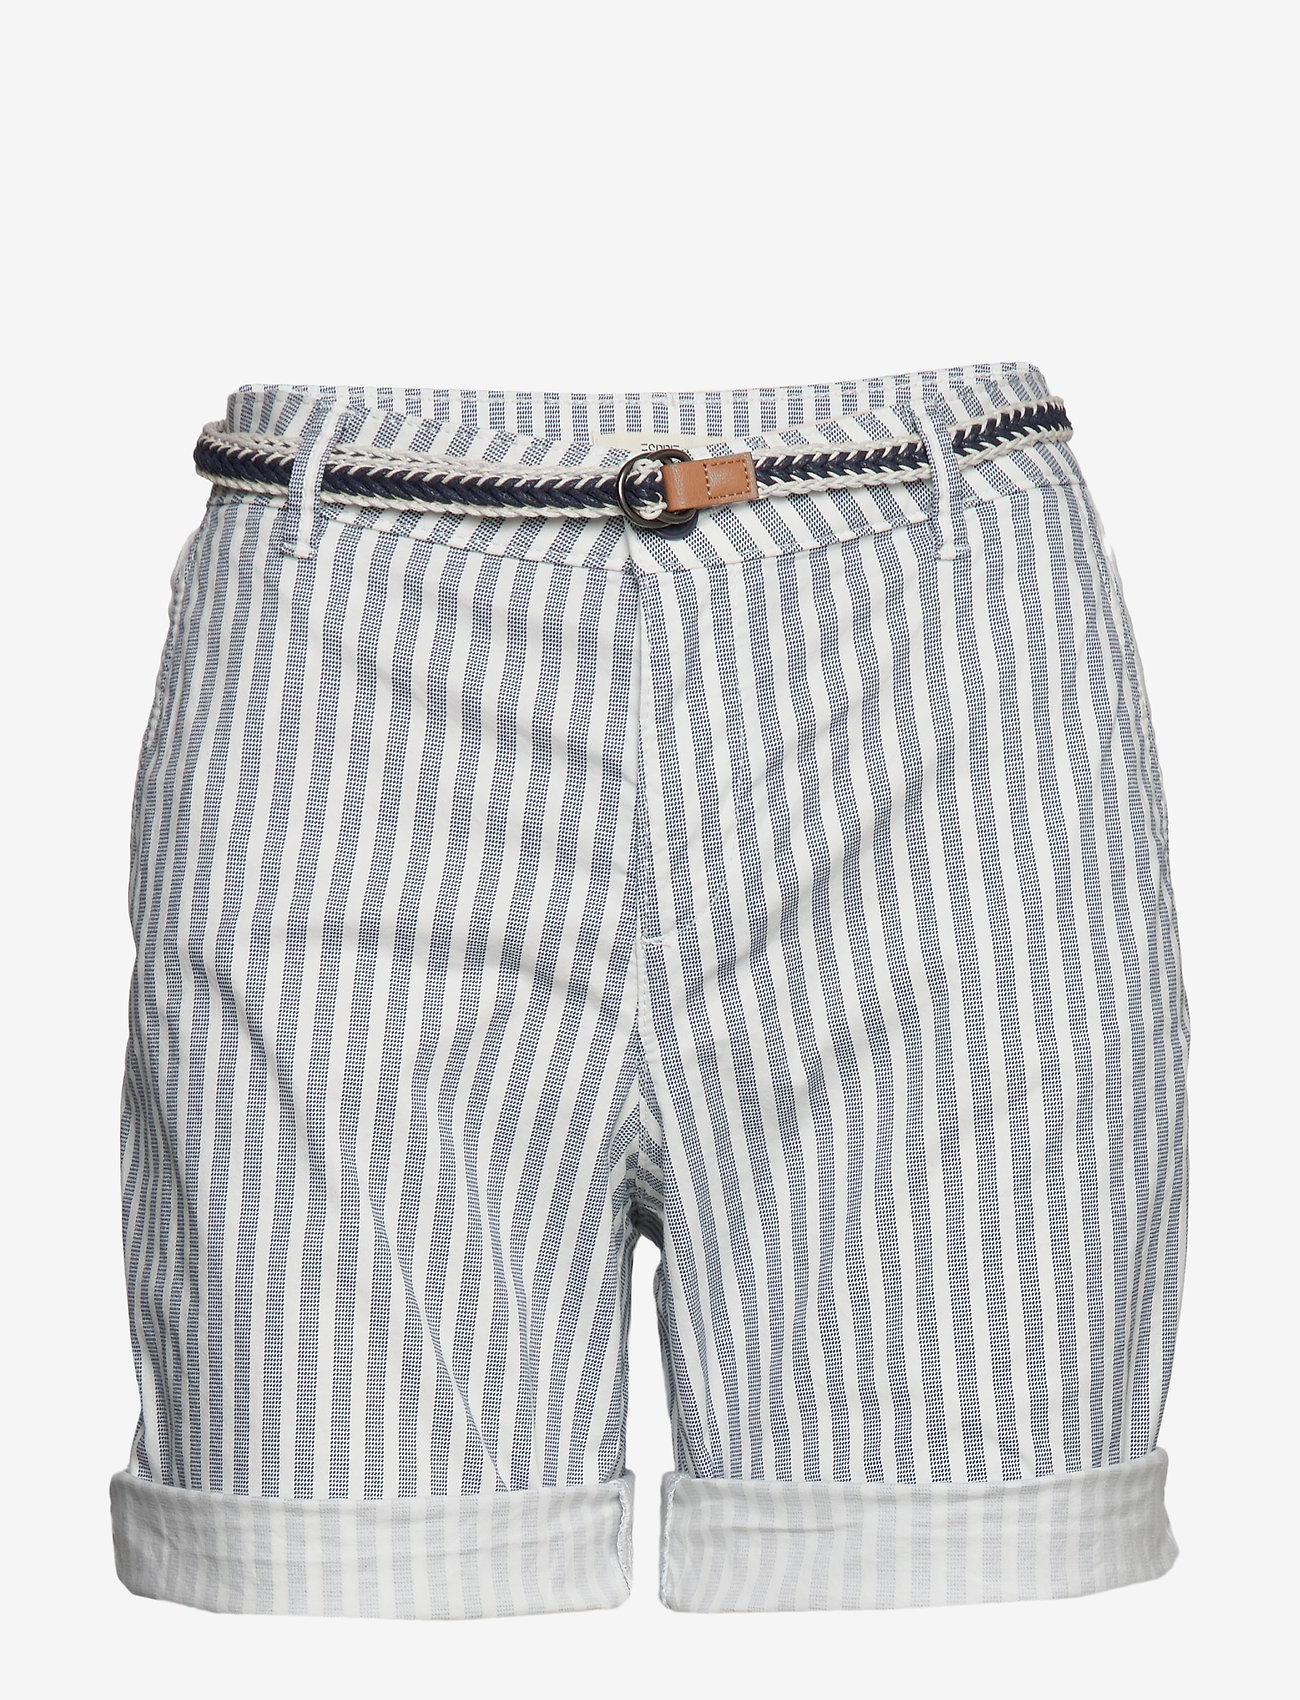 Esprit Casual - Shorts woven - casual shorts - grey blue - 0